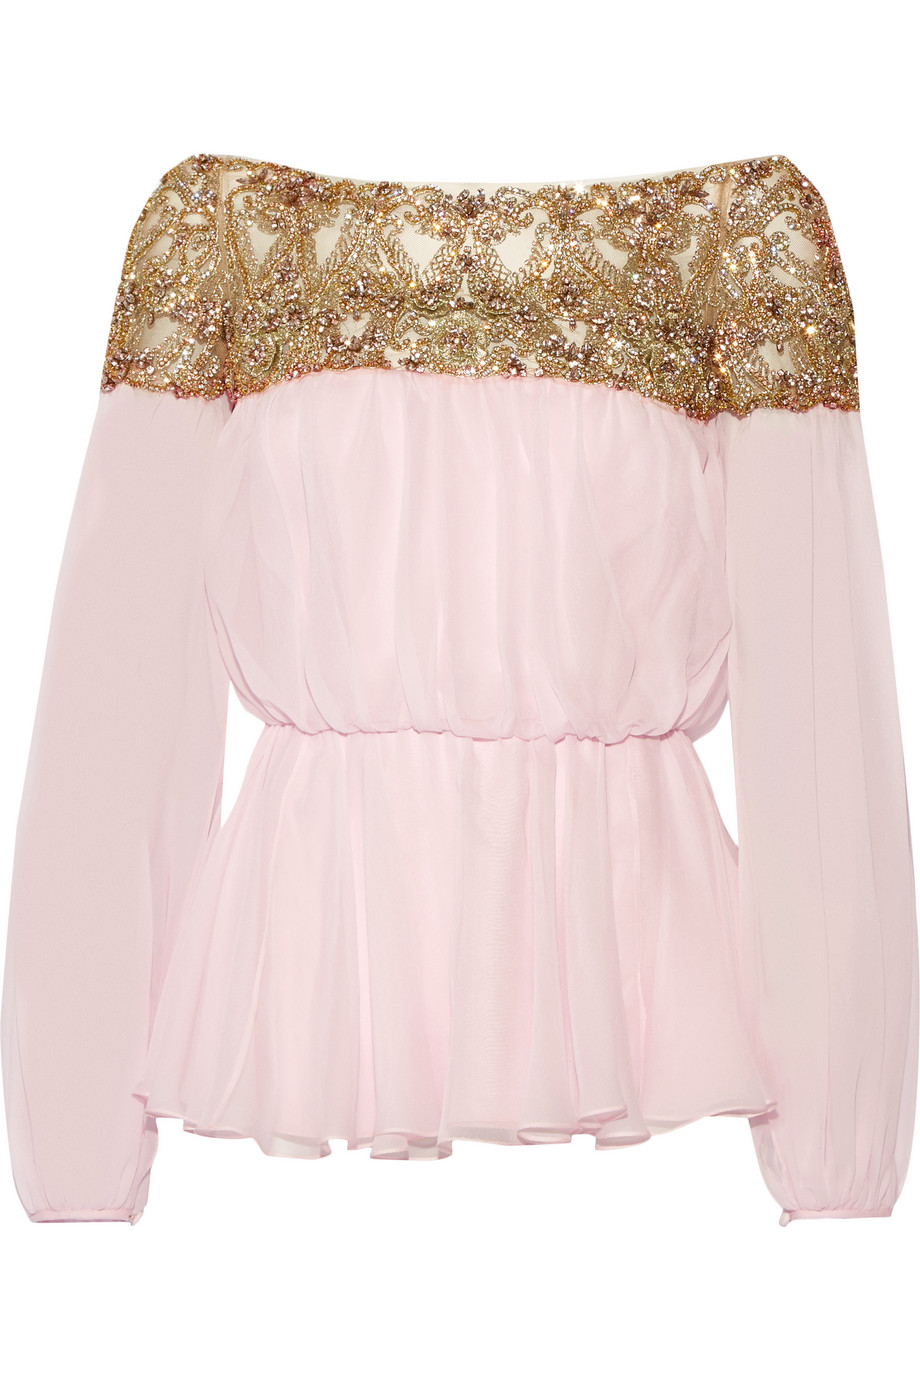 Marchesa Embellished Tulle and Silk-Chiffon Blouse, Pastel Pink/Gold, Women's, Size: 4